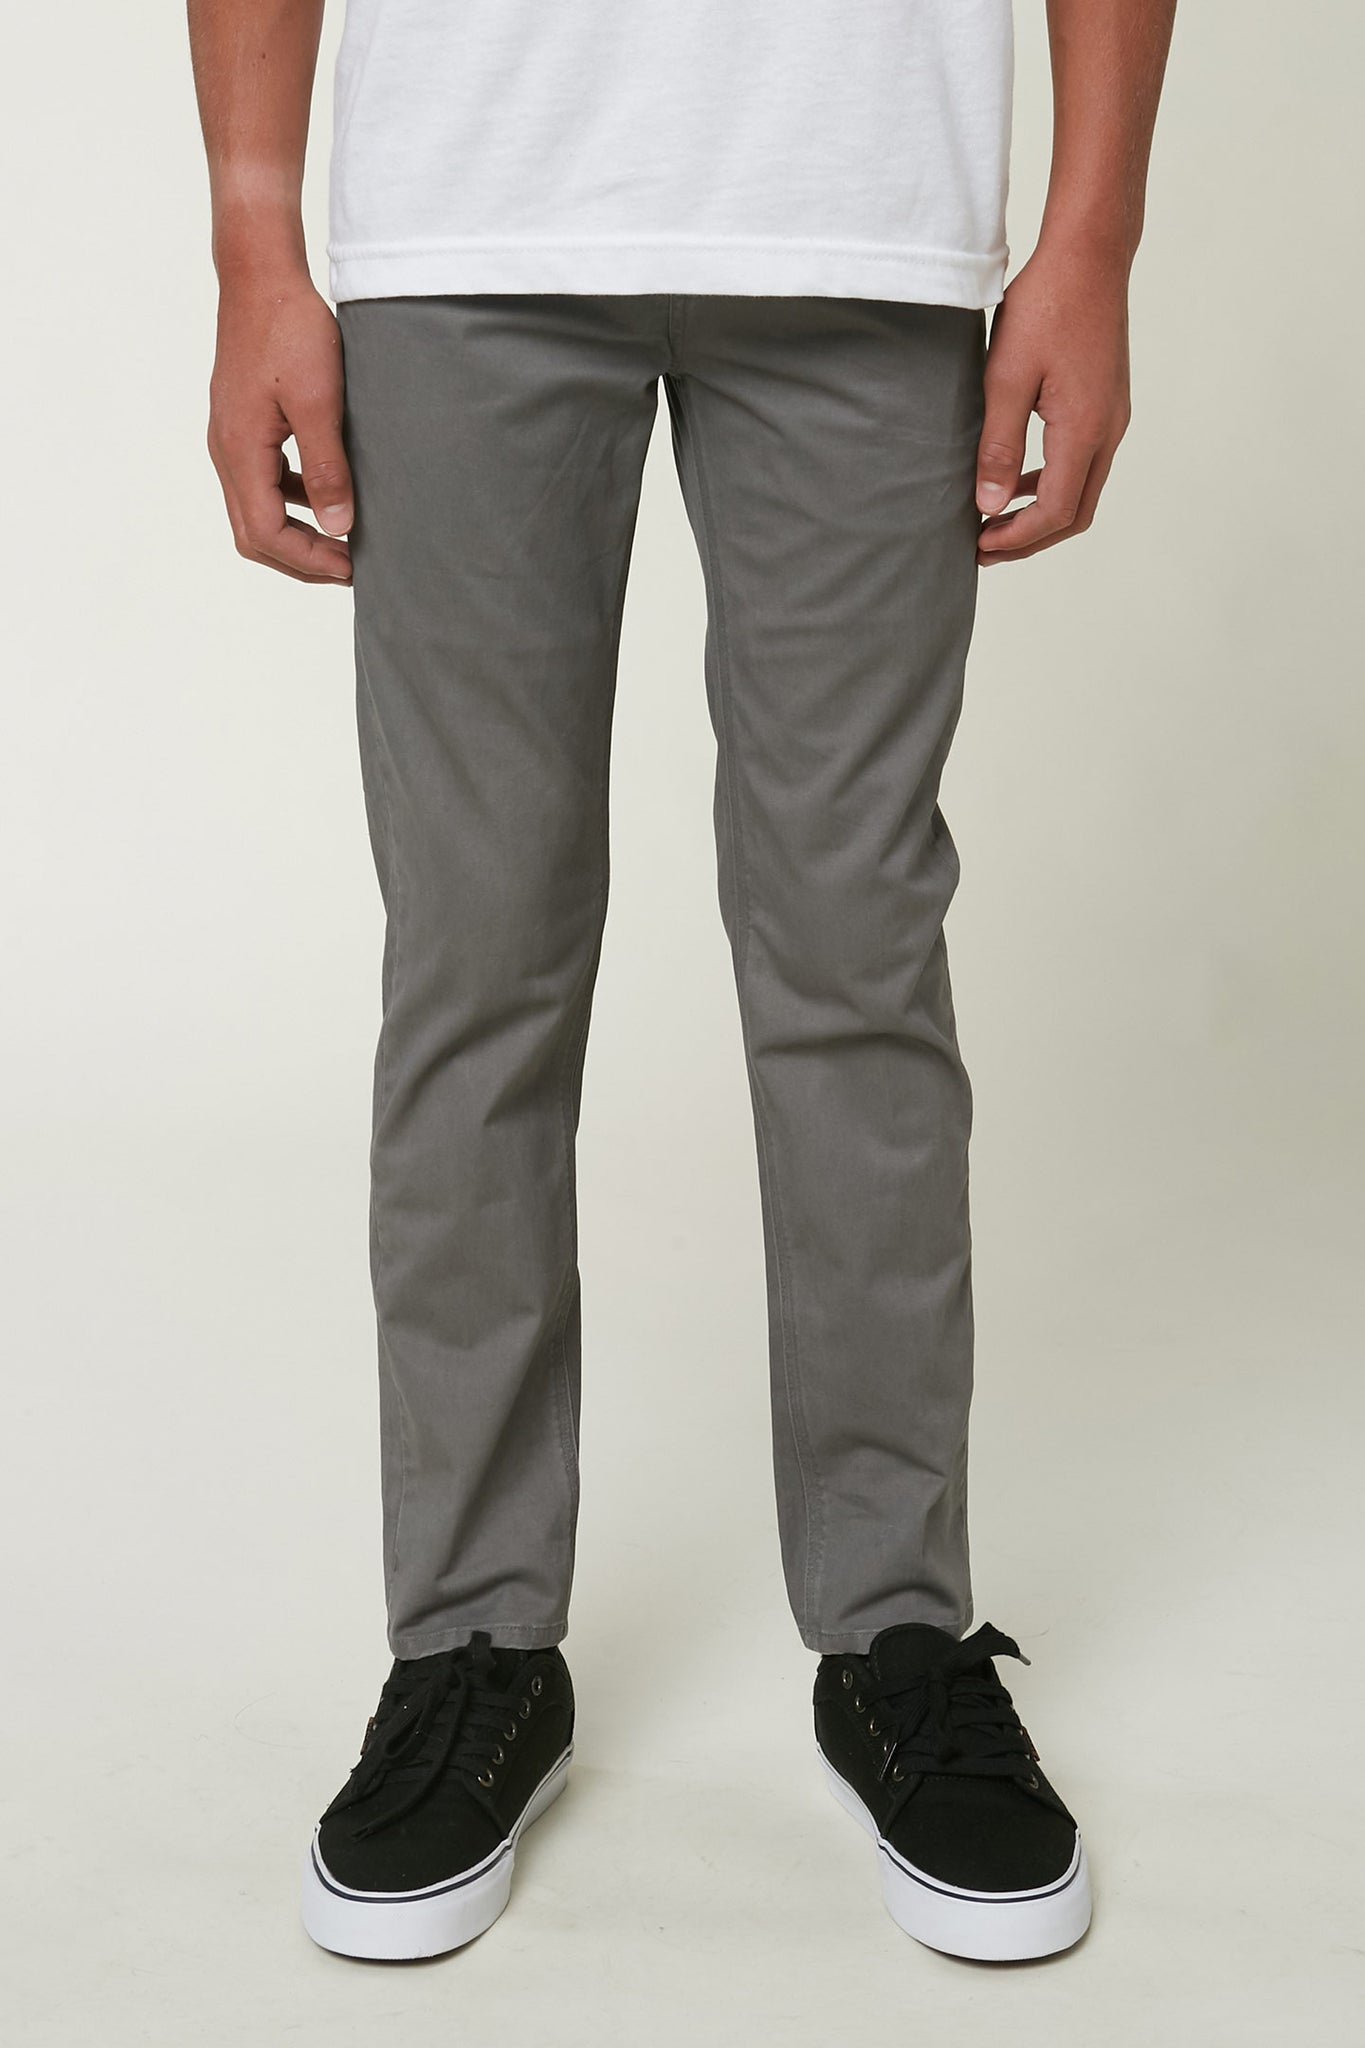 Boys Cyd Modern Chino Pants - Gun Metal | O'Neill